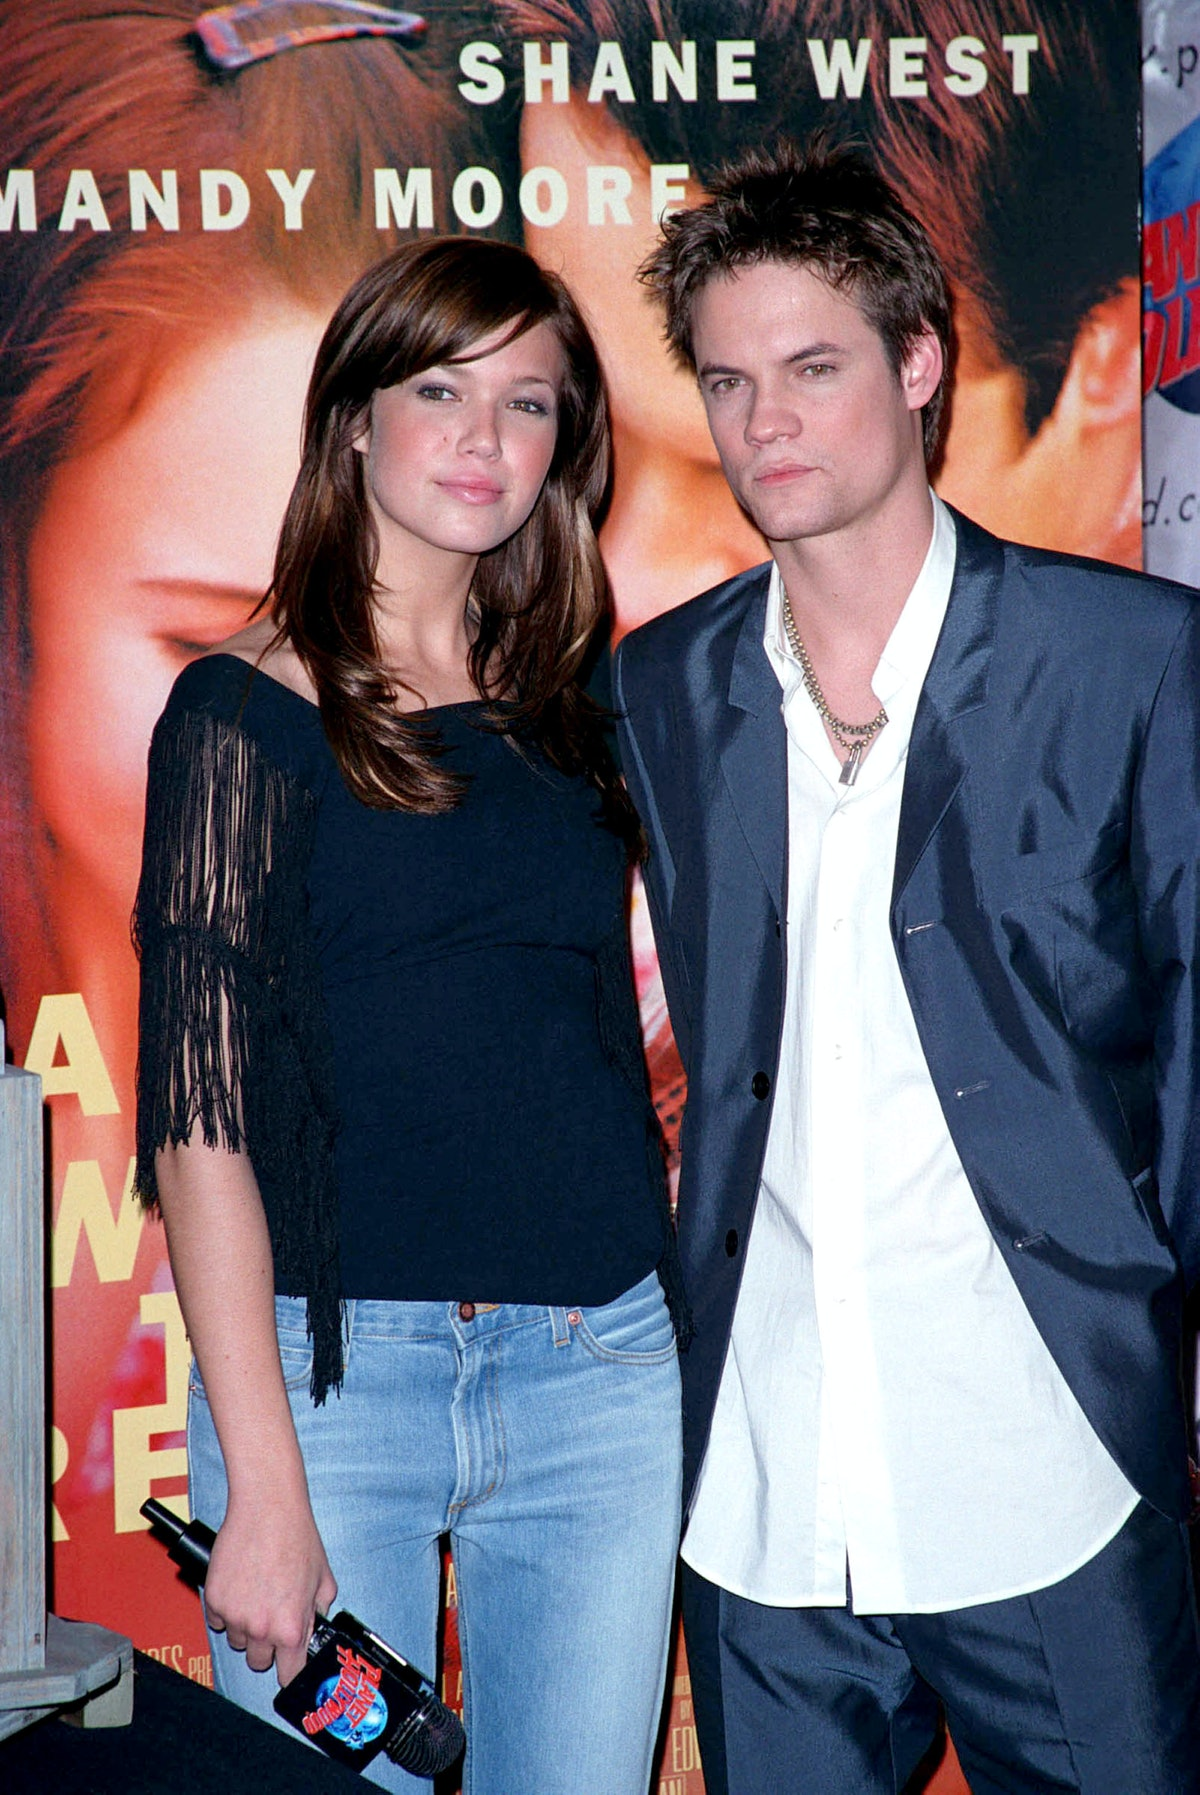 Mandy Moore and Shane West, shown here at a film screening, crushed on each other during the filming...